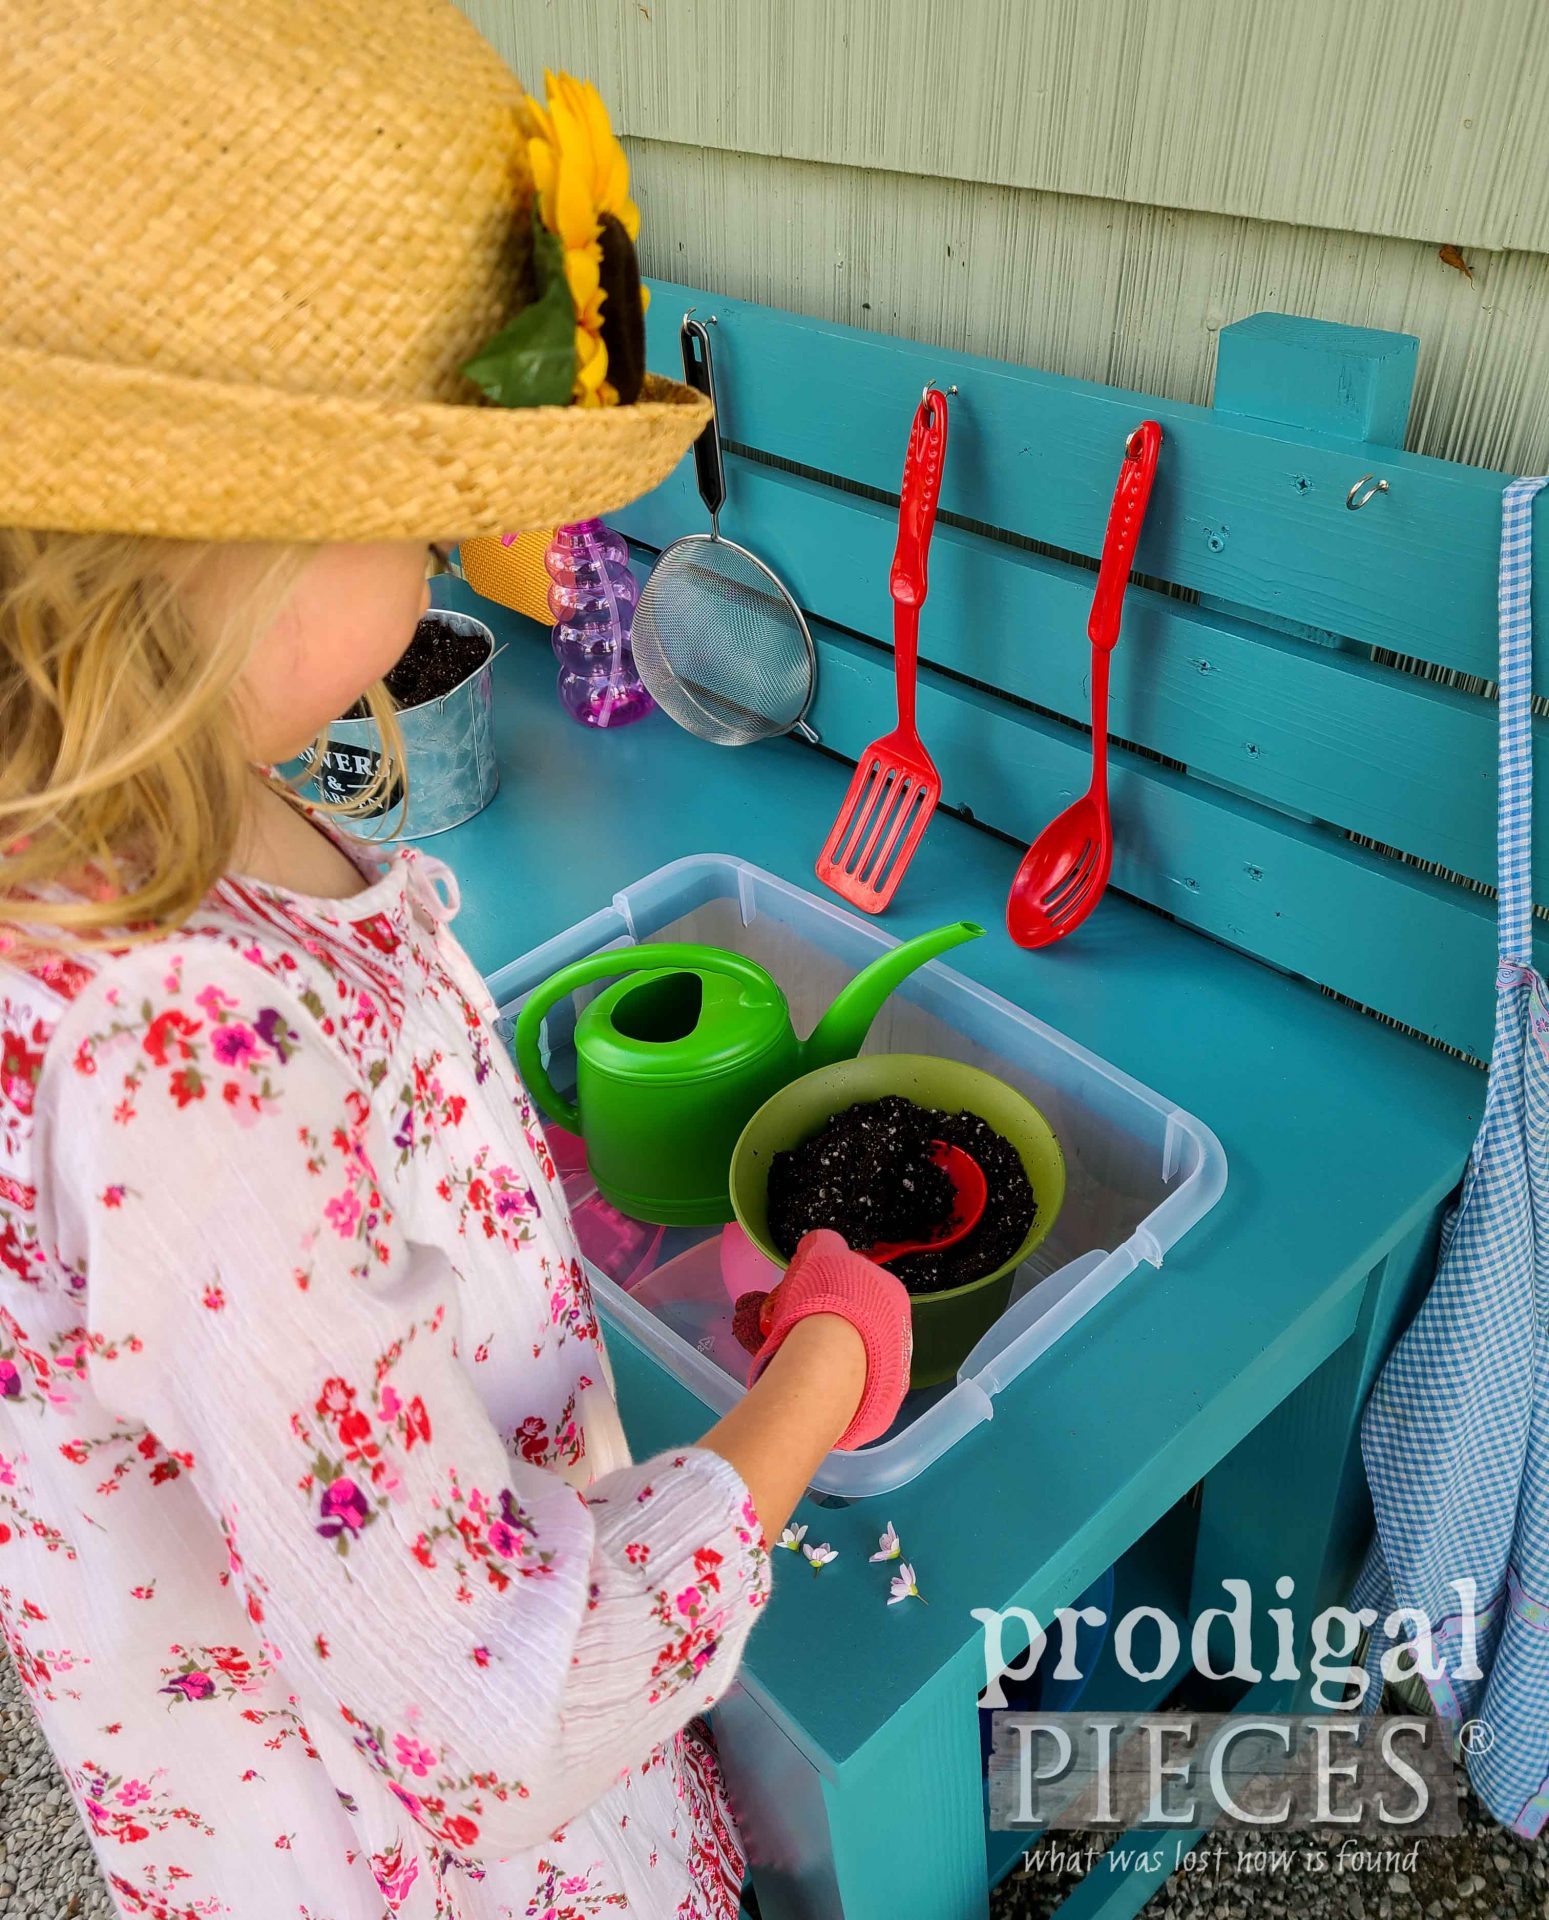 Pretend Play Potting Bench Built from Reclaimed Sewing Desk Top by Prodigal Pieces | prodigalpieces.com #prodigalpieces #toys #kids #fun #upcycled